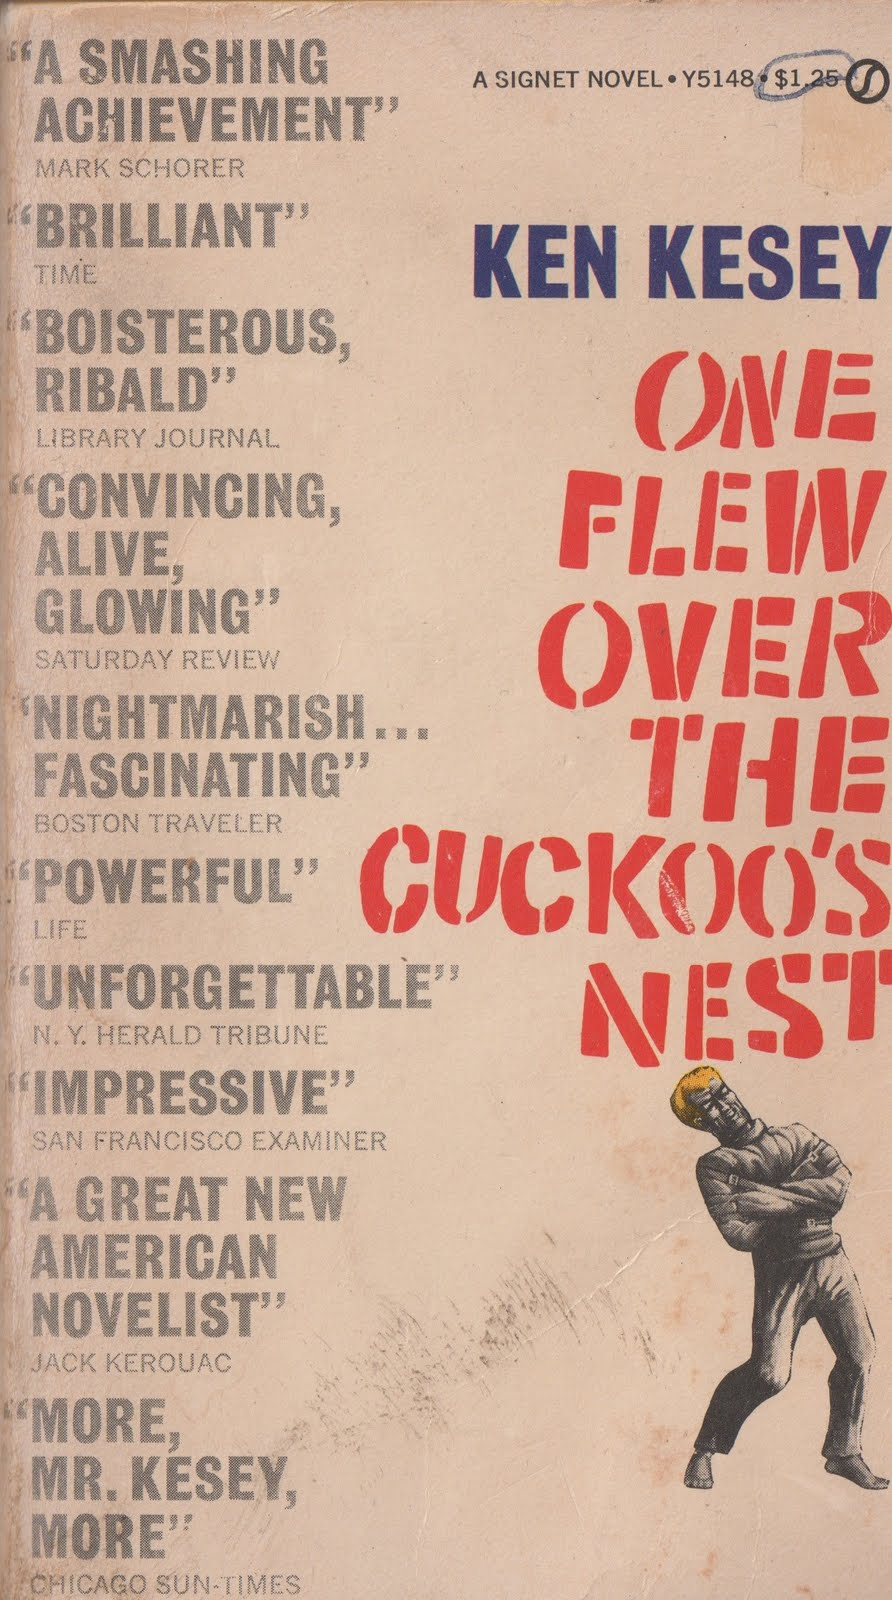 One Flew Over Cuckoo's Nest